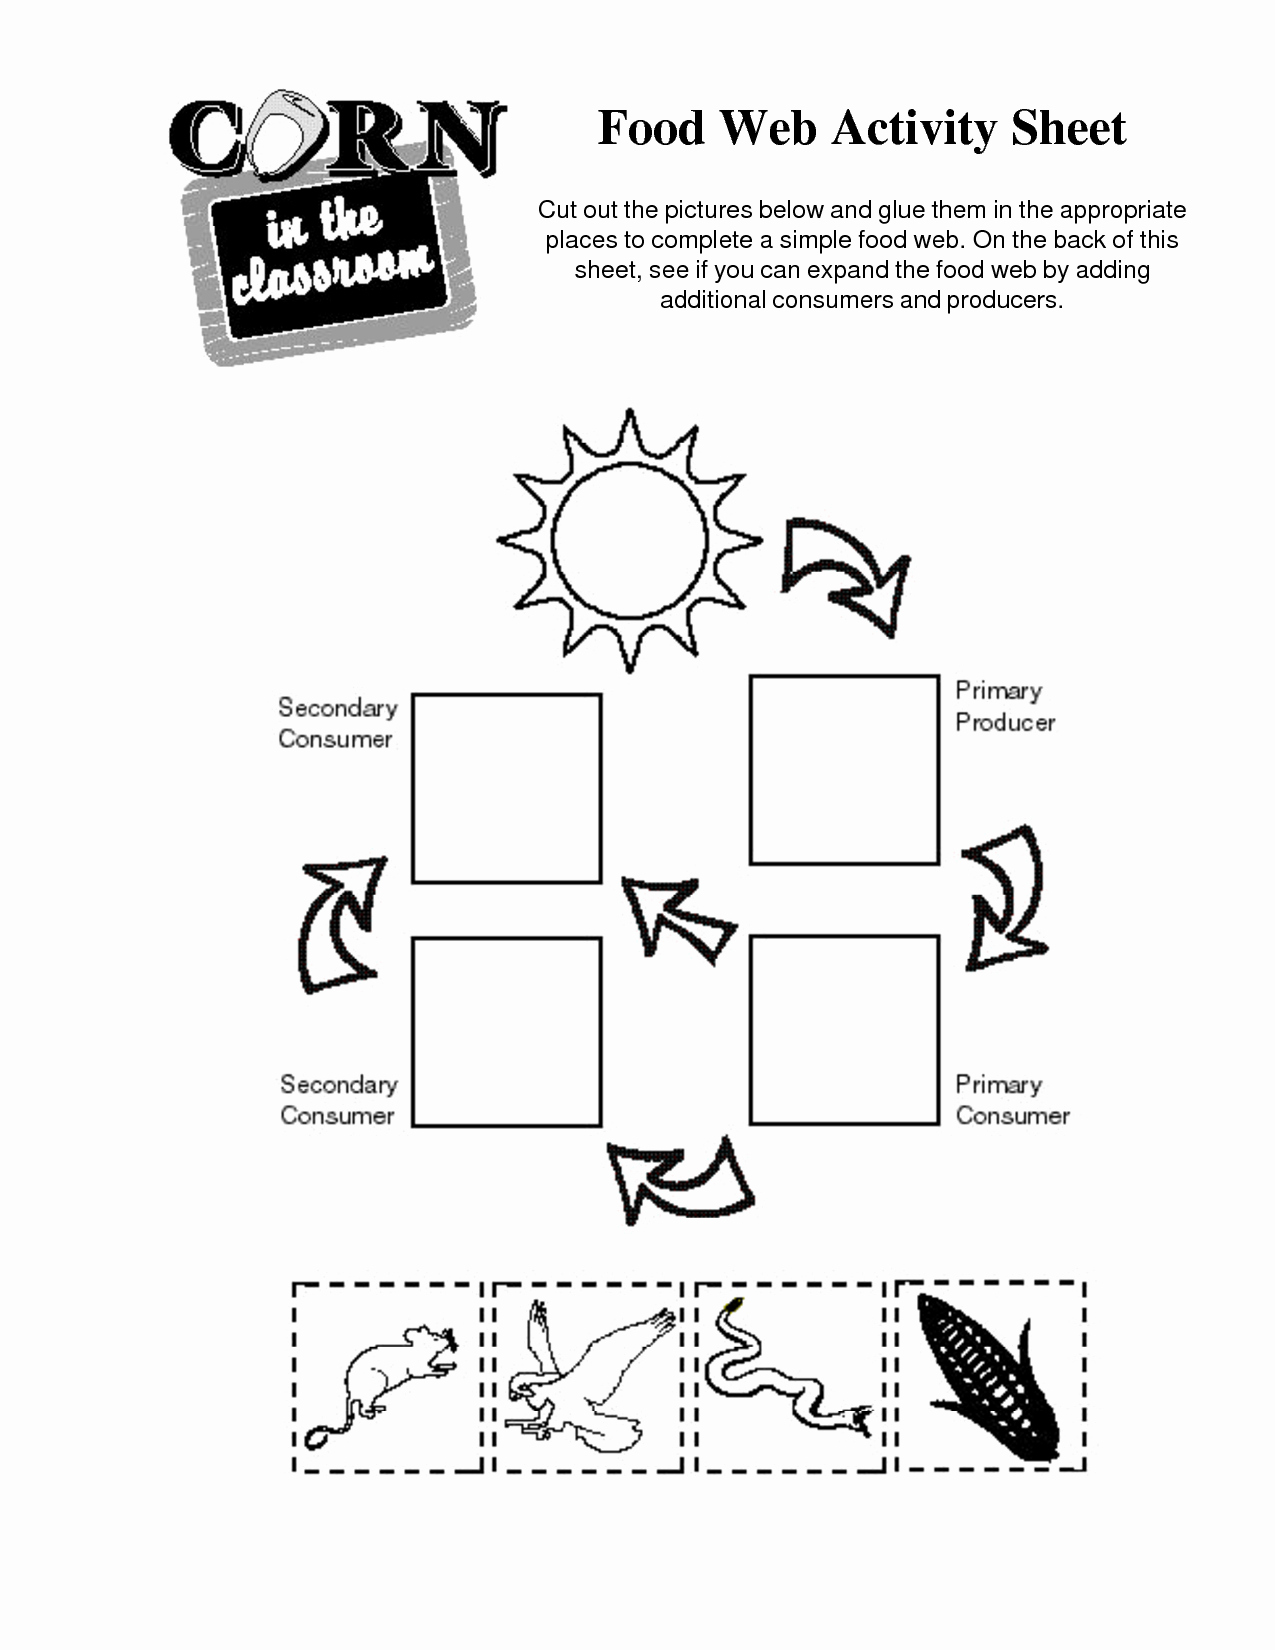 Food Web Worksheet Answers Elegant Worksheet Food Web Worksheets Grass Fedjp Worksheet